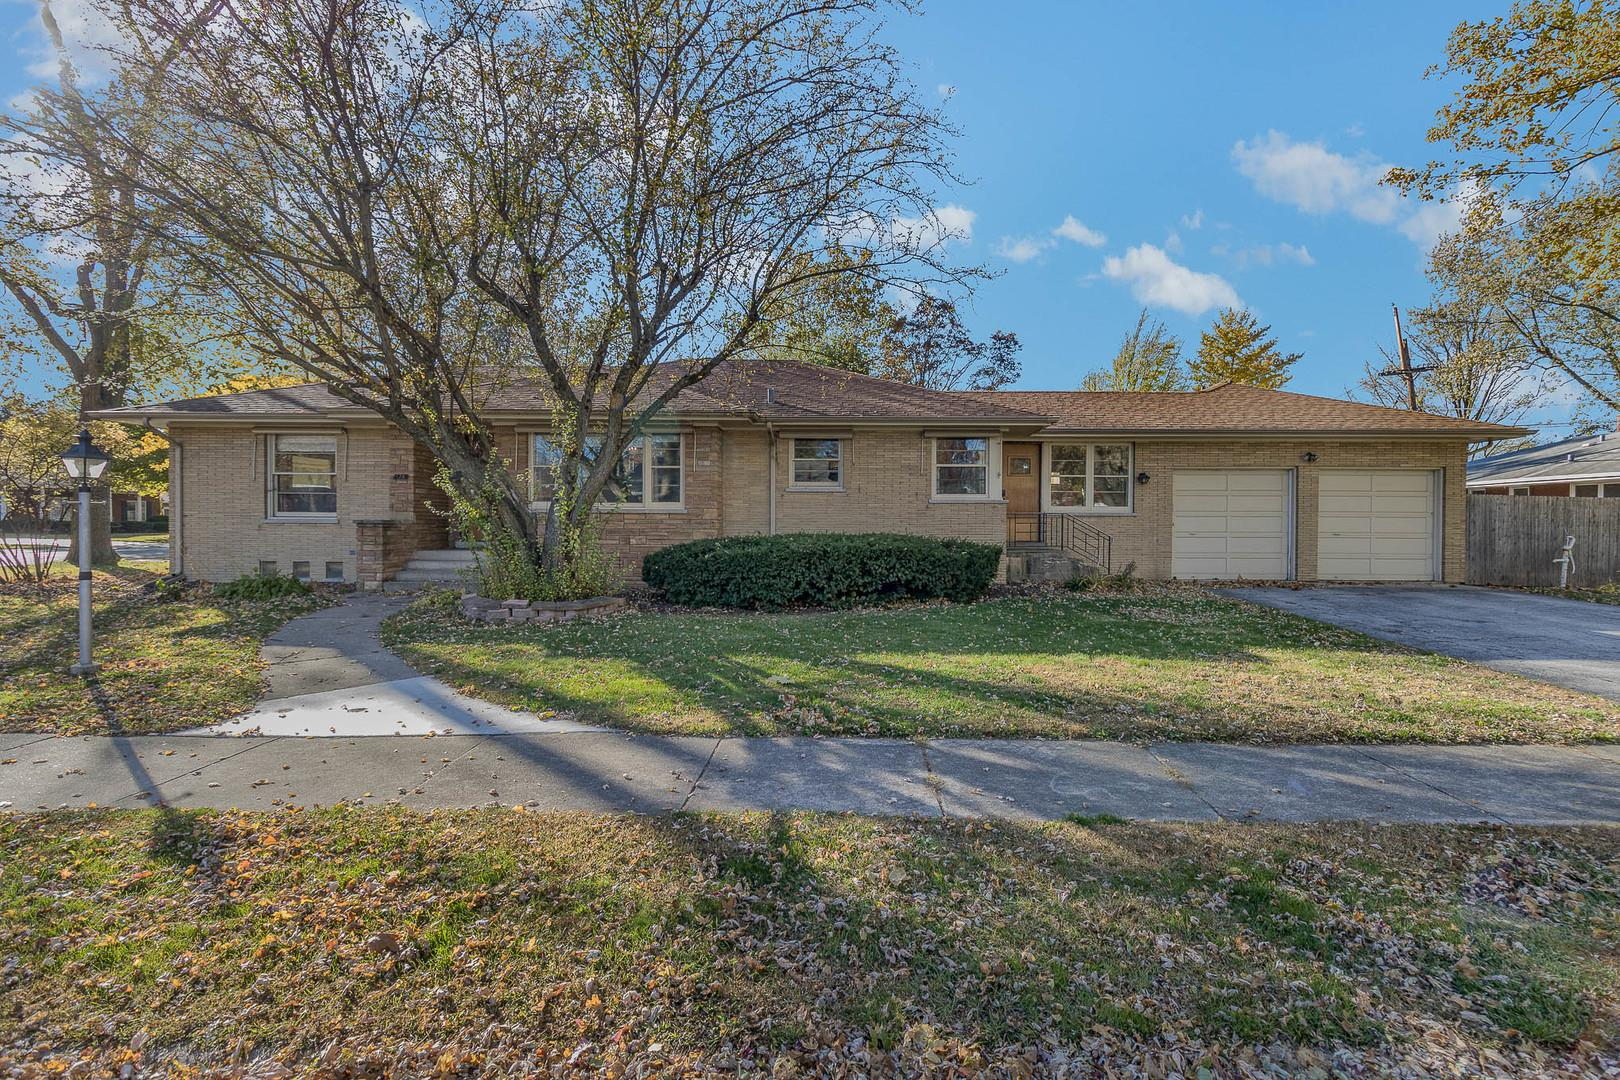 528 E 160th Place, South Holland, IL 60473 - #: 10928370